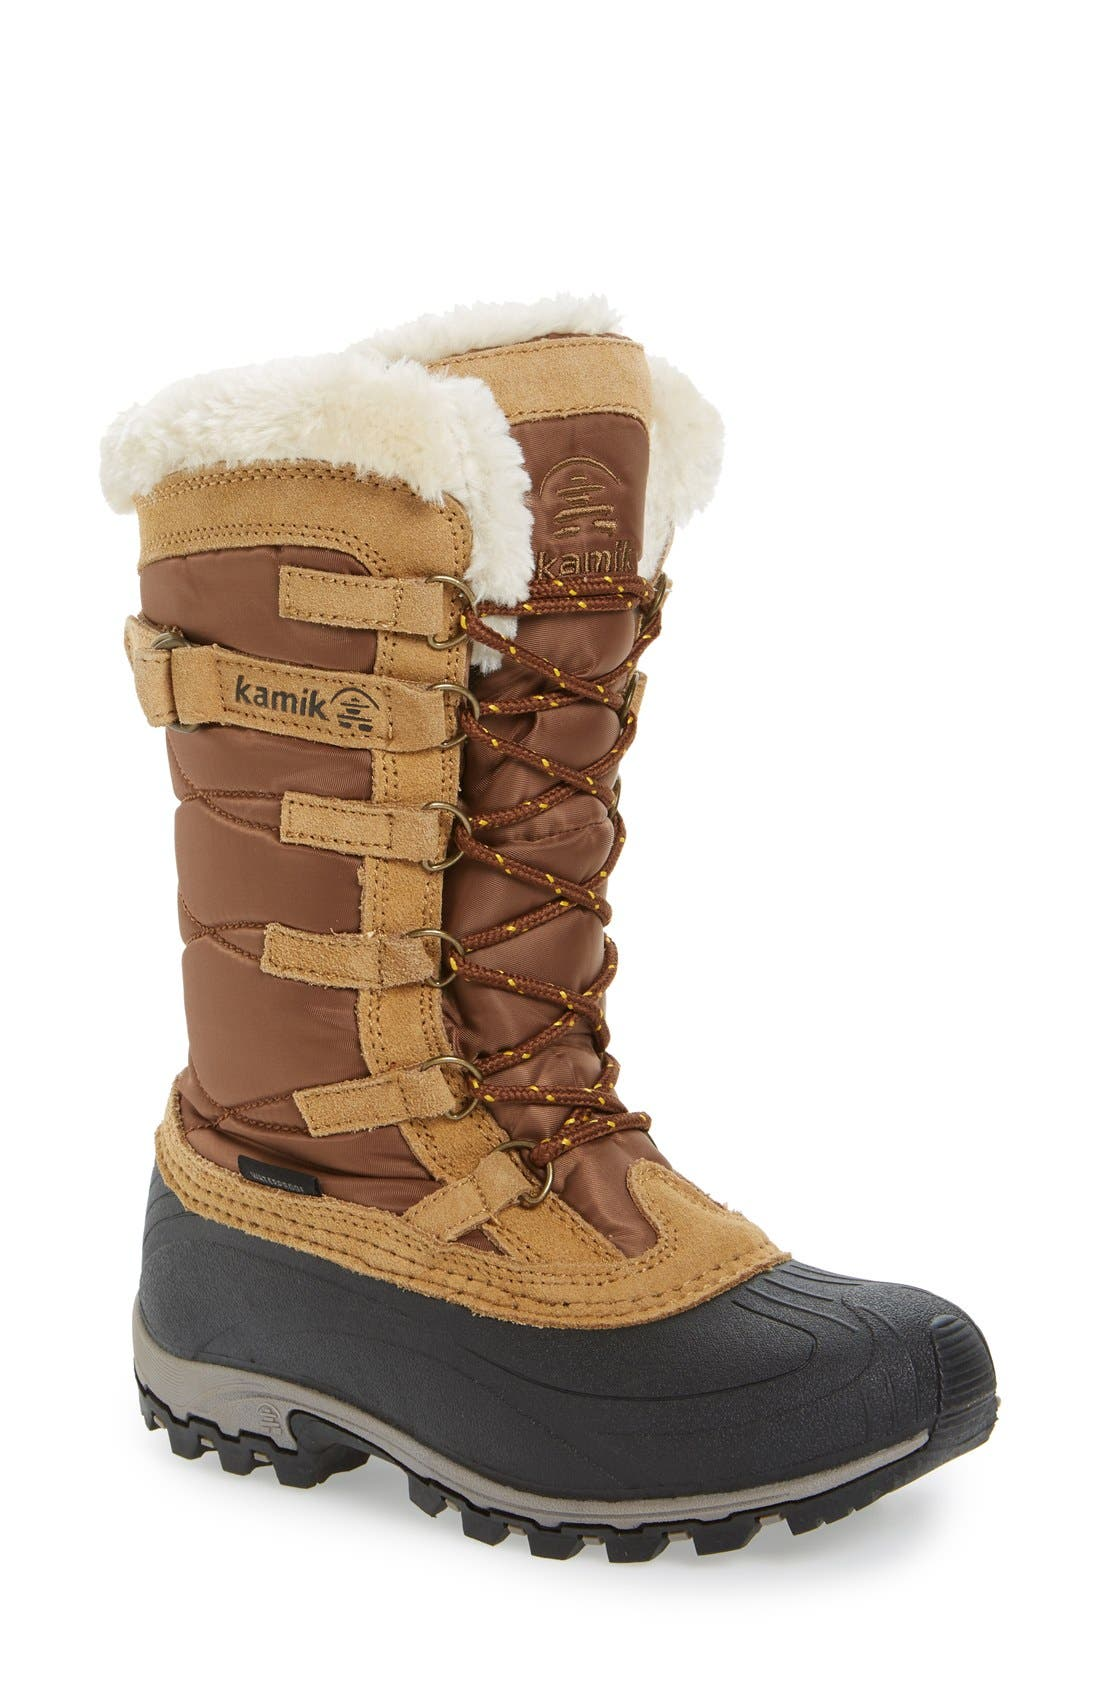 Kamik Snowvalley Waterproof Boot With Faux Fur Cuff, Brown